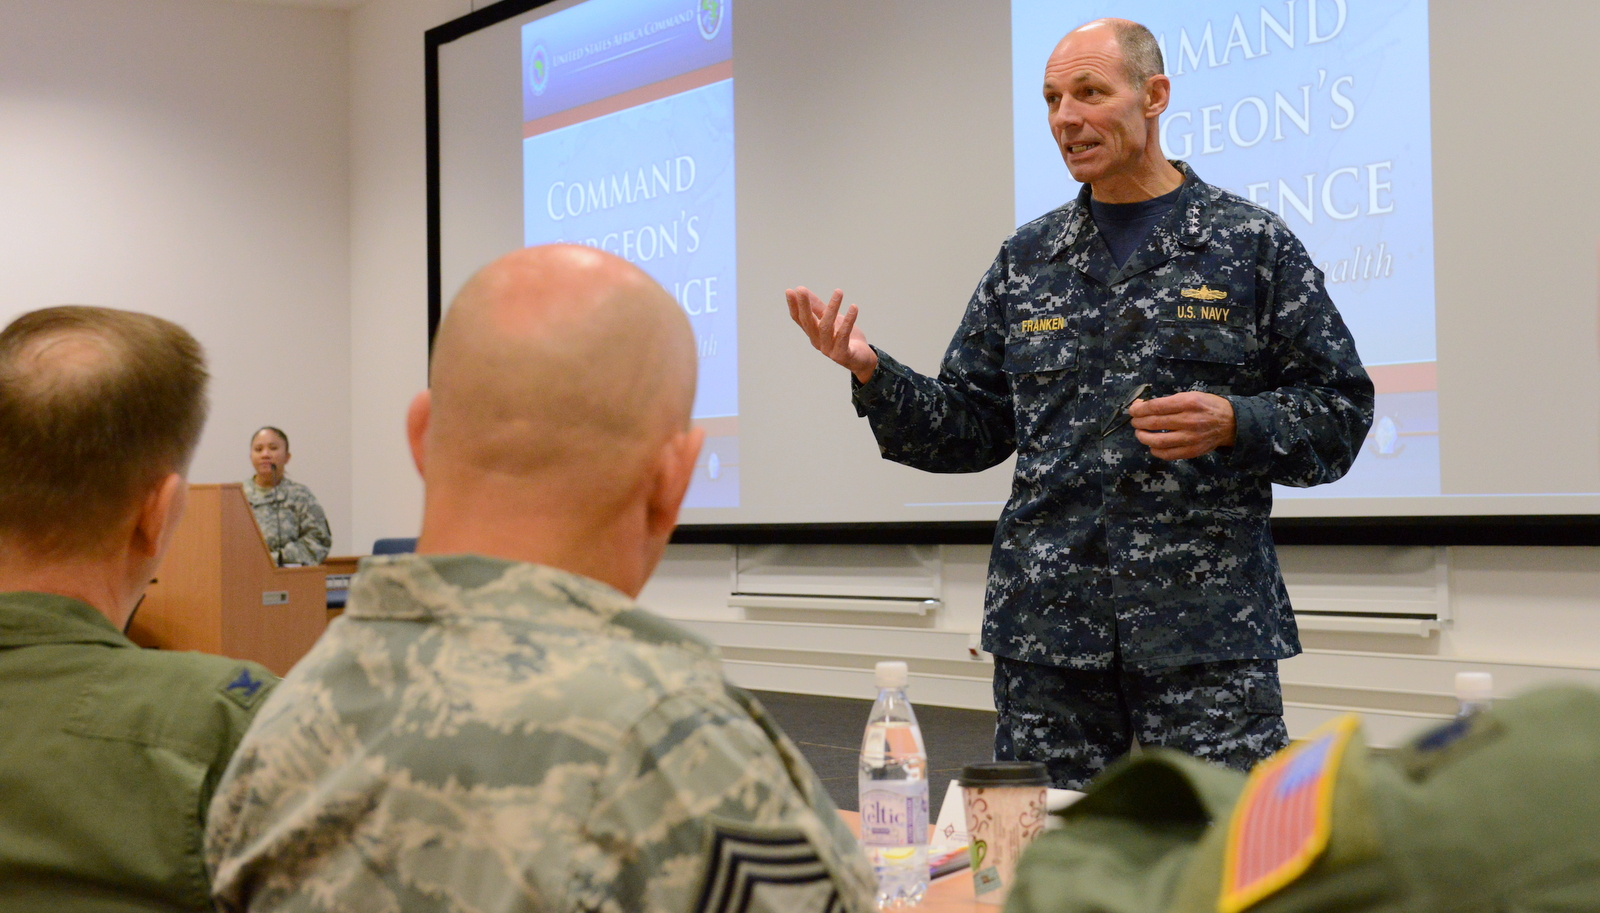 U.S. Navy Vice Adm. Michael T. Franken, the deputy commander for military operations with U.S. Africa Command, speaks during the 2015 AFRICOM Command Surgeon's Conference at Kelley Barracks, U.S. Army Garrison Stuttgart, Germany, Sept. 10, 2015. The conference was a forum for medical providers and officers from U.S. component commands and partner nations to discuss how their medical operations collectively support AFRICOM's theater campaign plan.